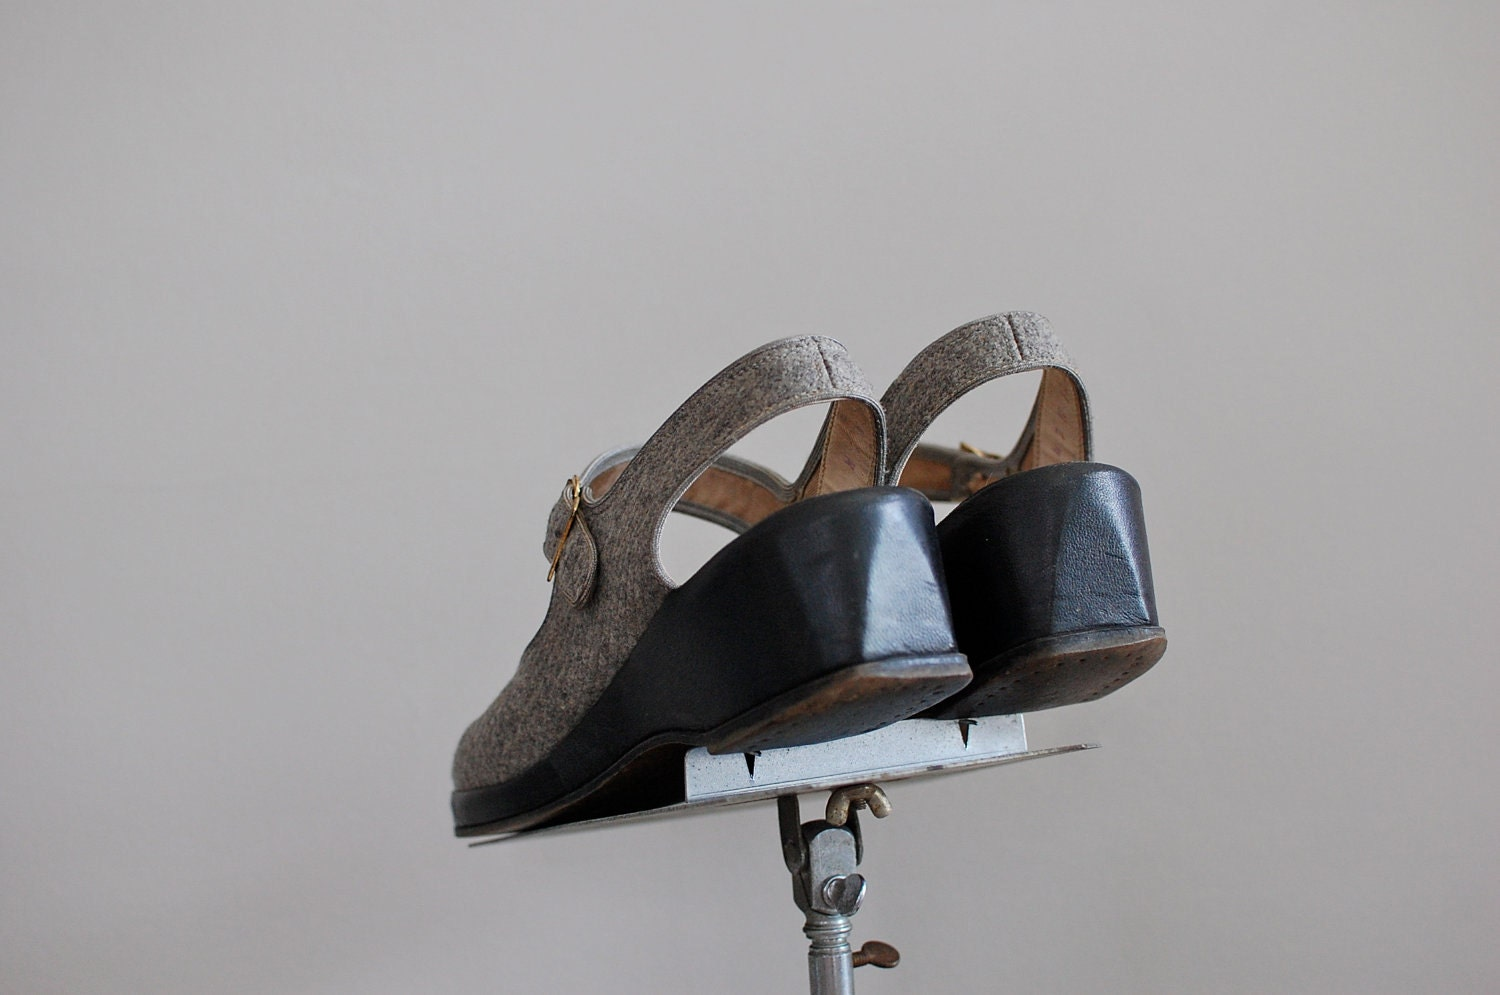 vintage 1940s heathered gray wool peeptoe mary jane shoes with thick black